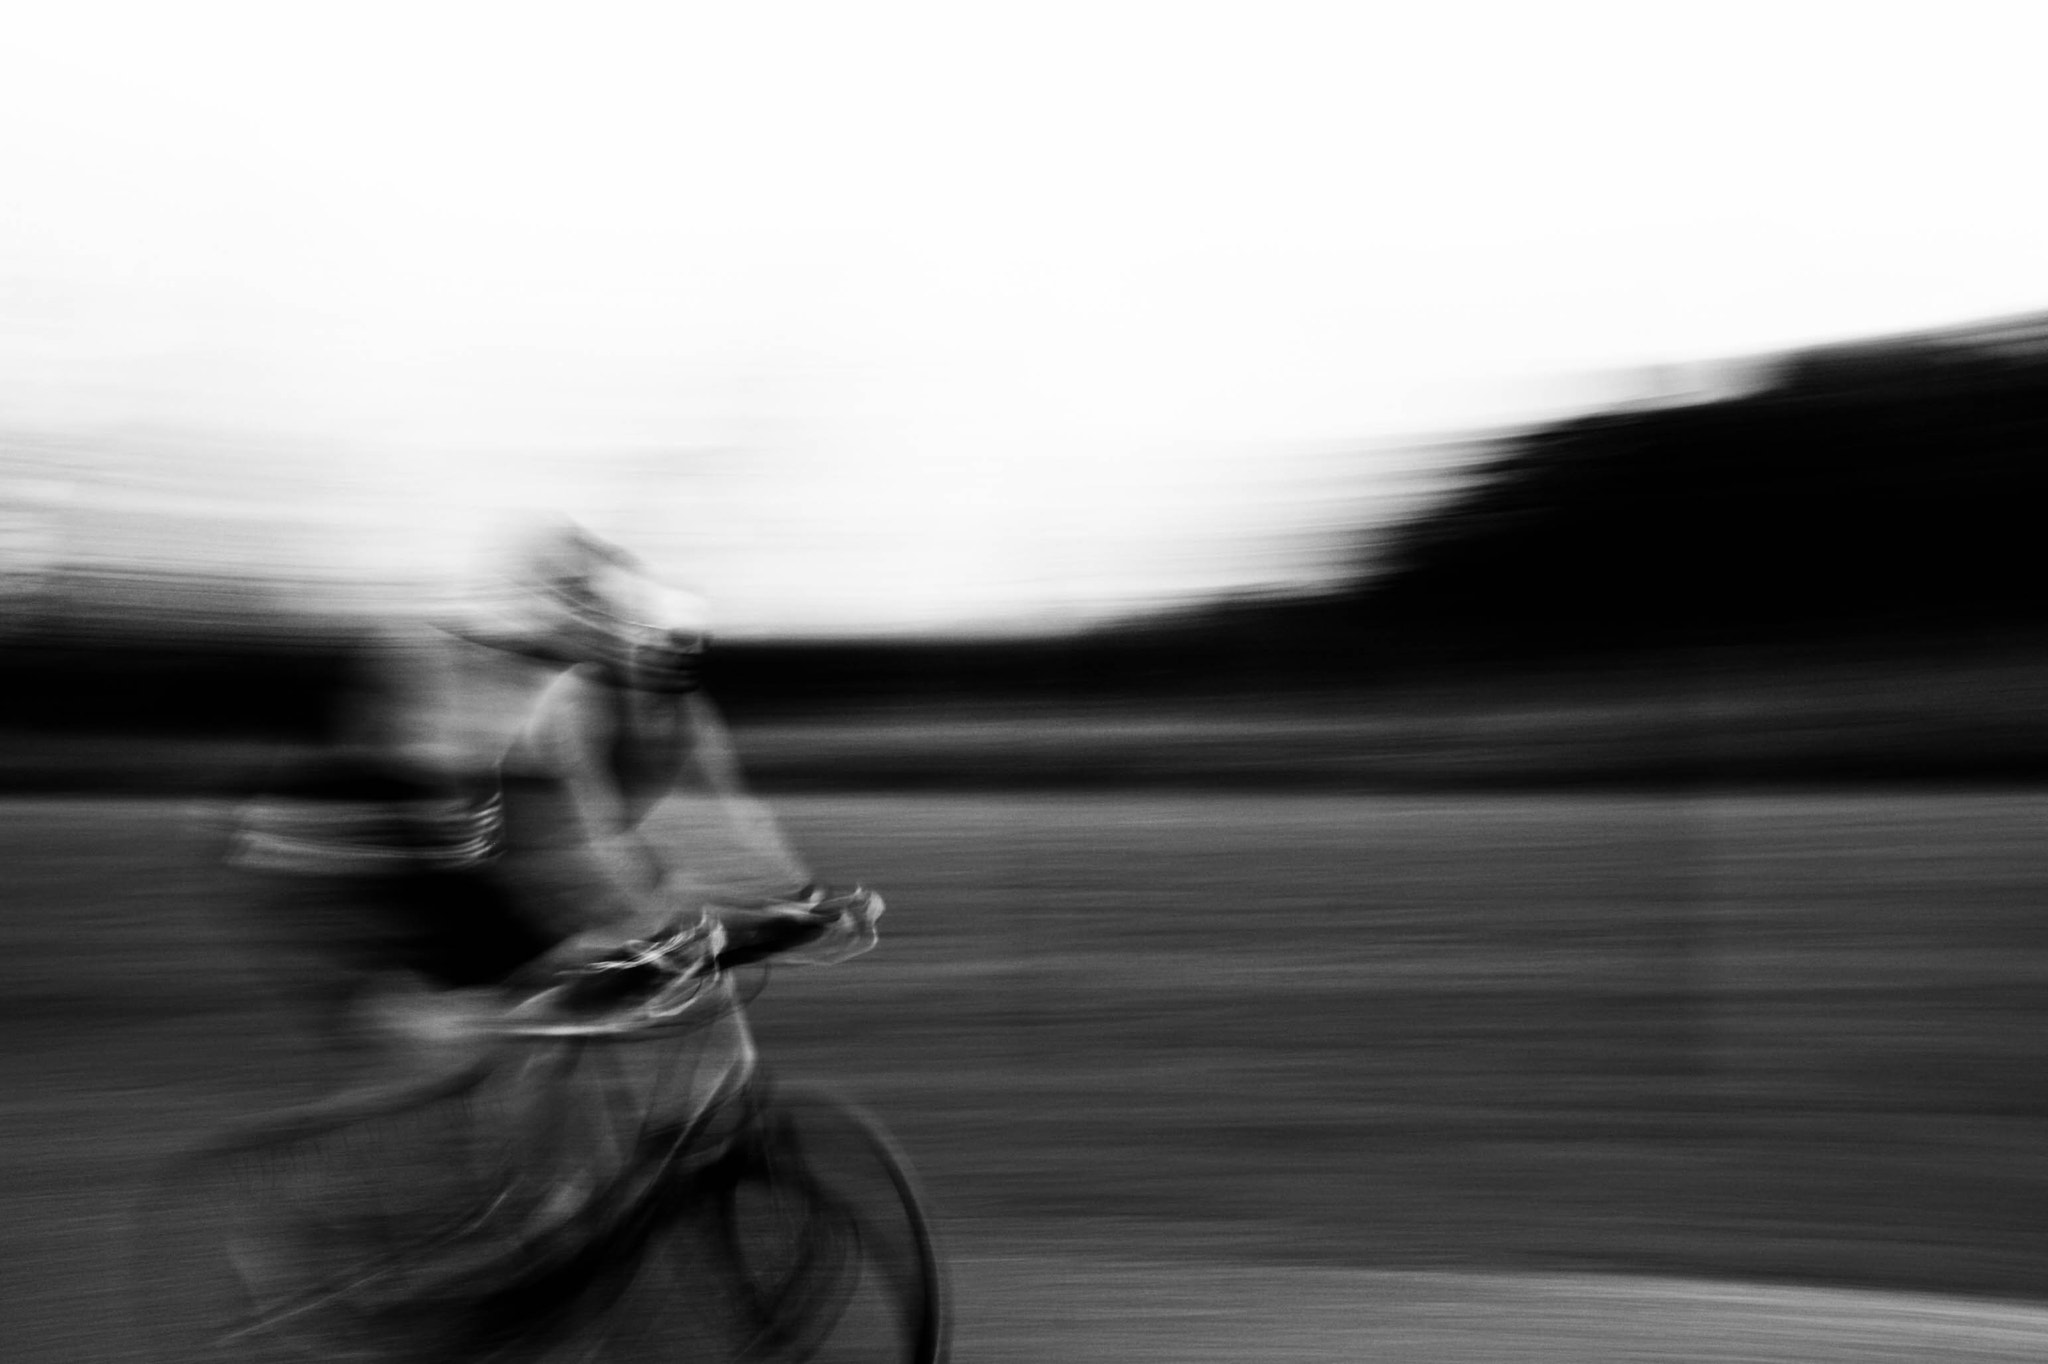 Photograph Speeding  by Nev Lim on 500px